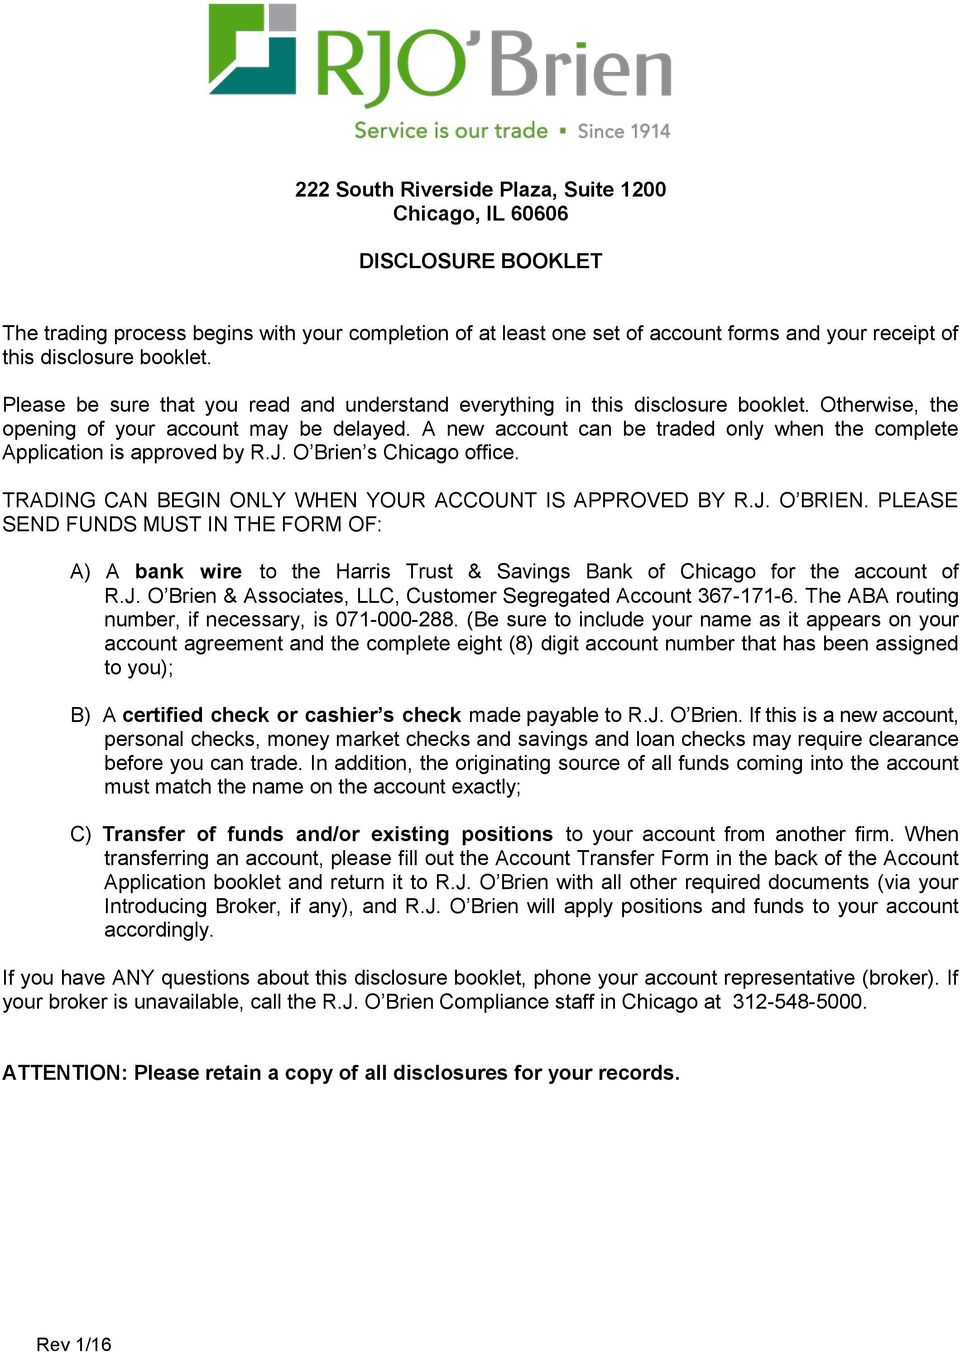 Electronic trading and order routing systems disclosure statement